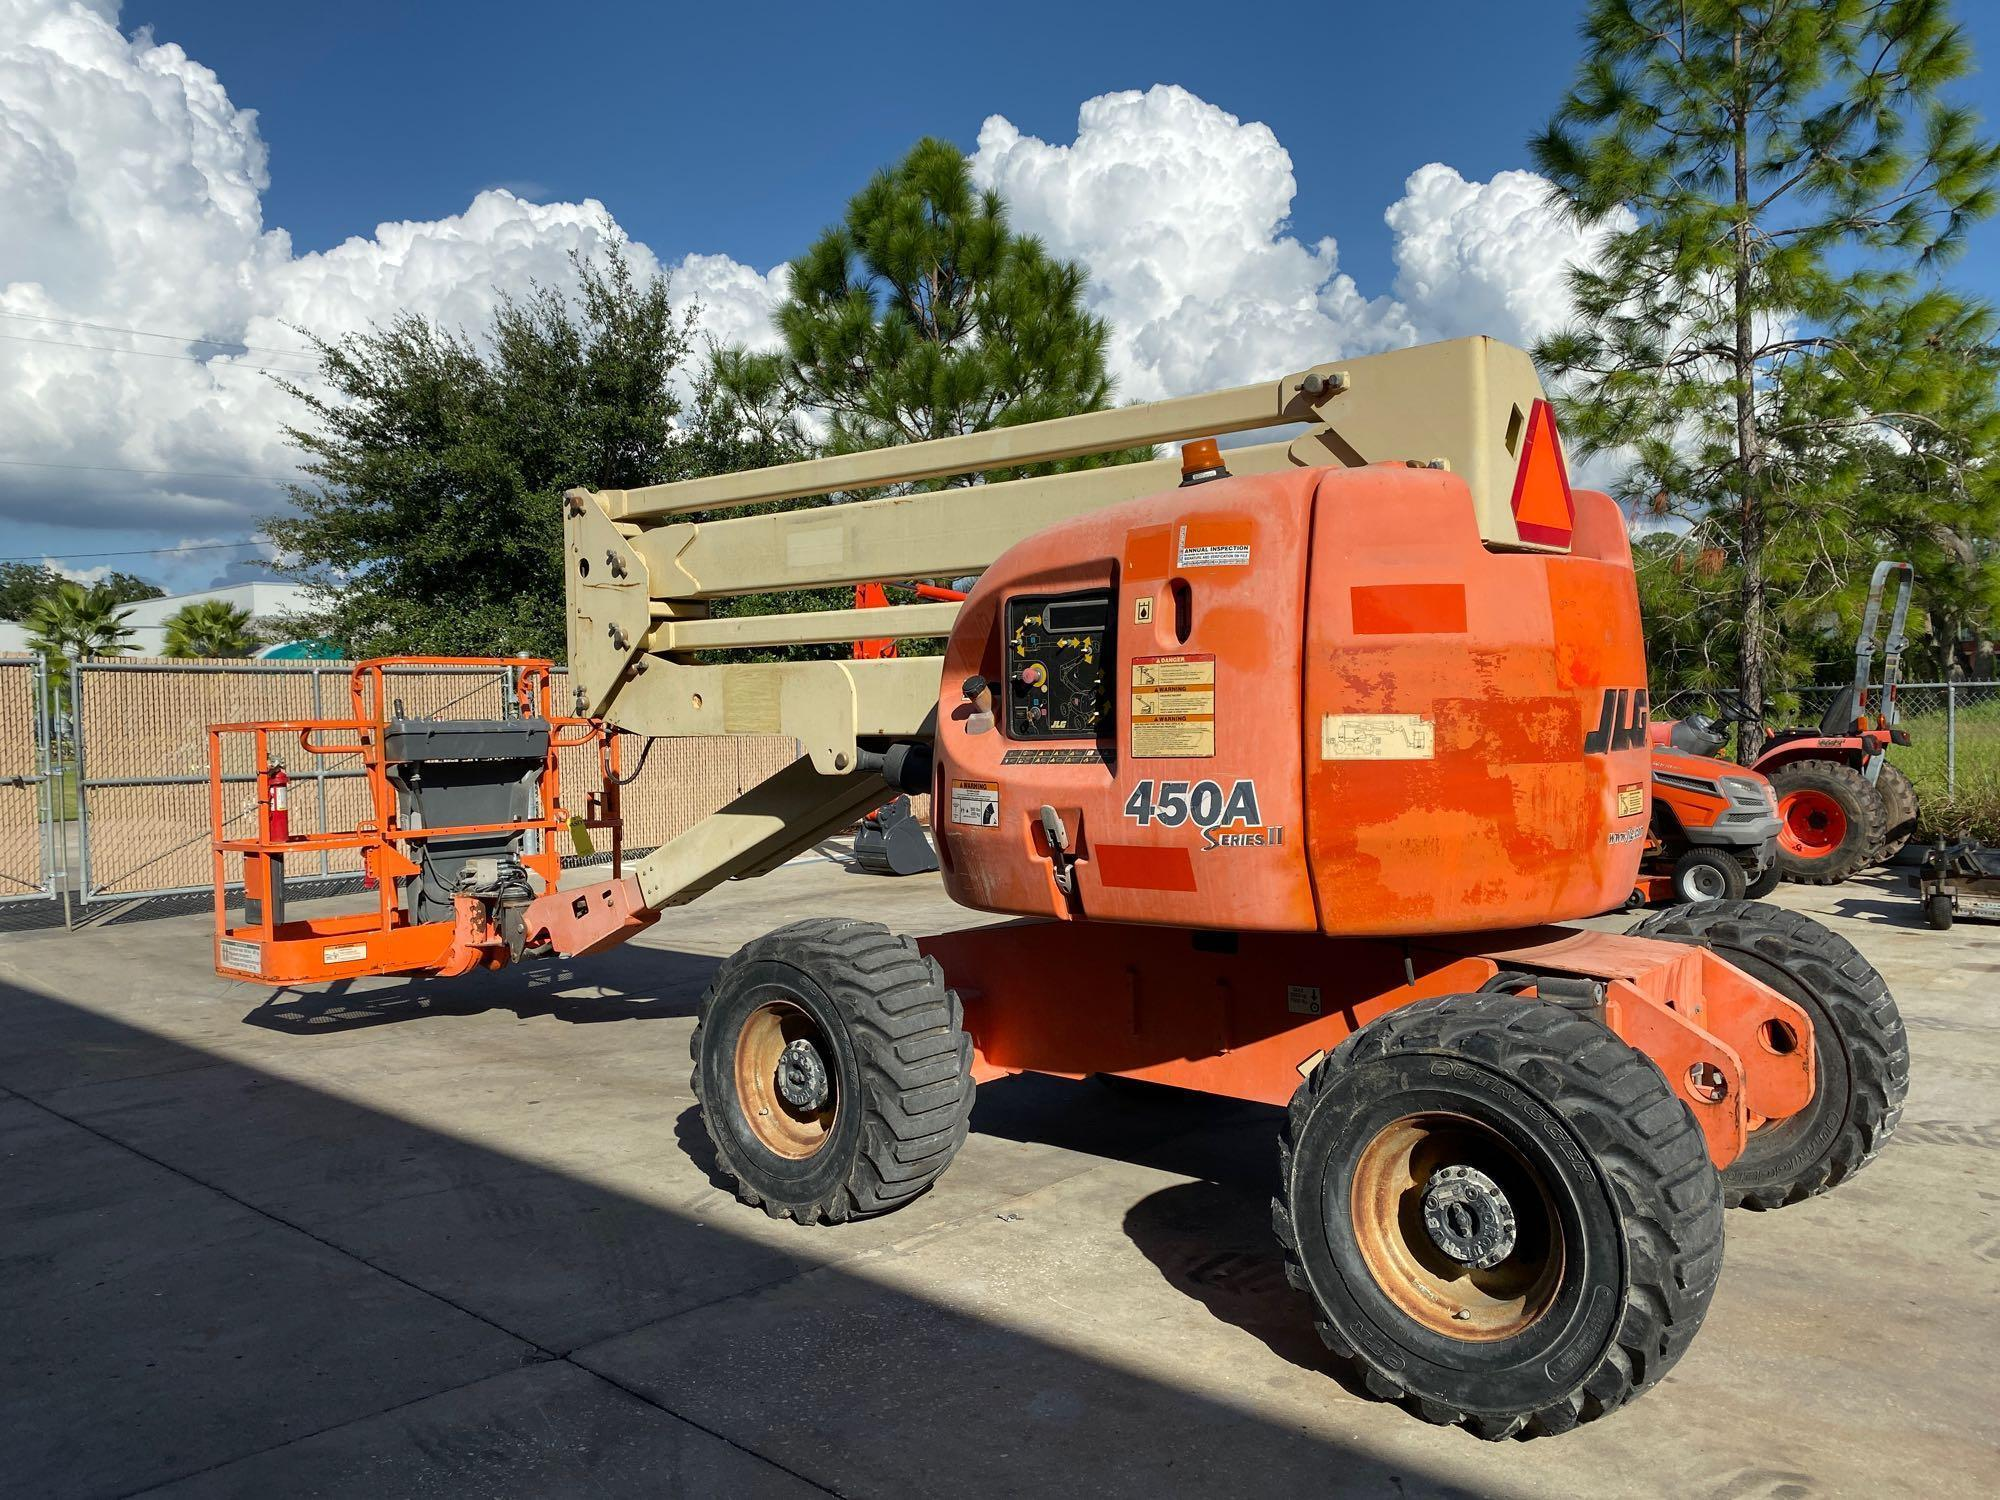 Lot 10 - JLG 450A DIESEL POWERED ARTICULATING BOOM LIFT, 45' PLATFORM HEIGHT, RUNS AND OPERATES